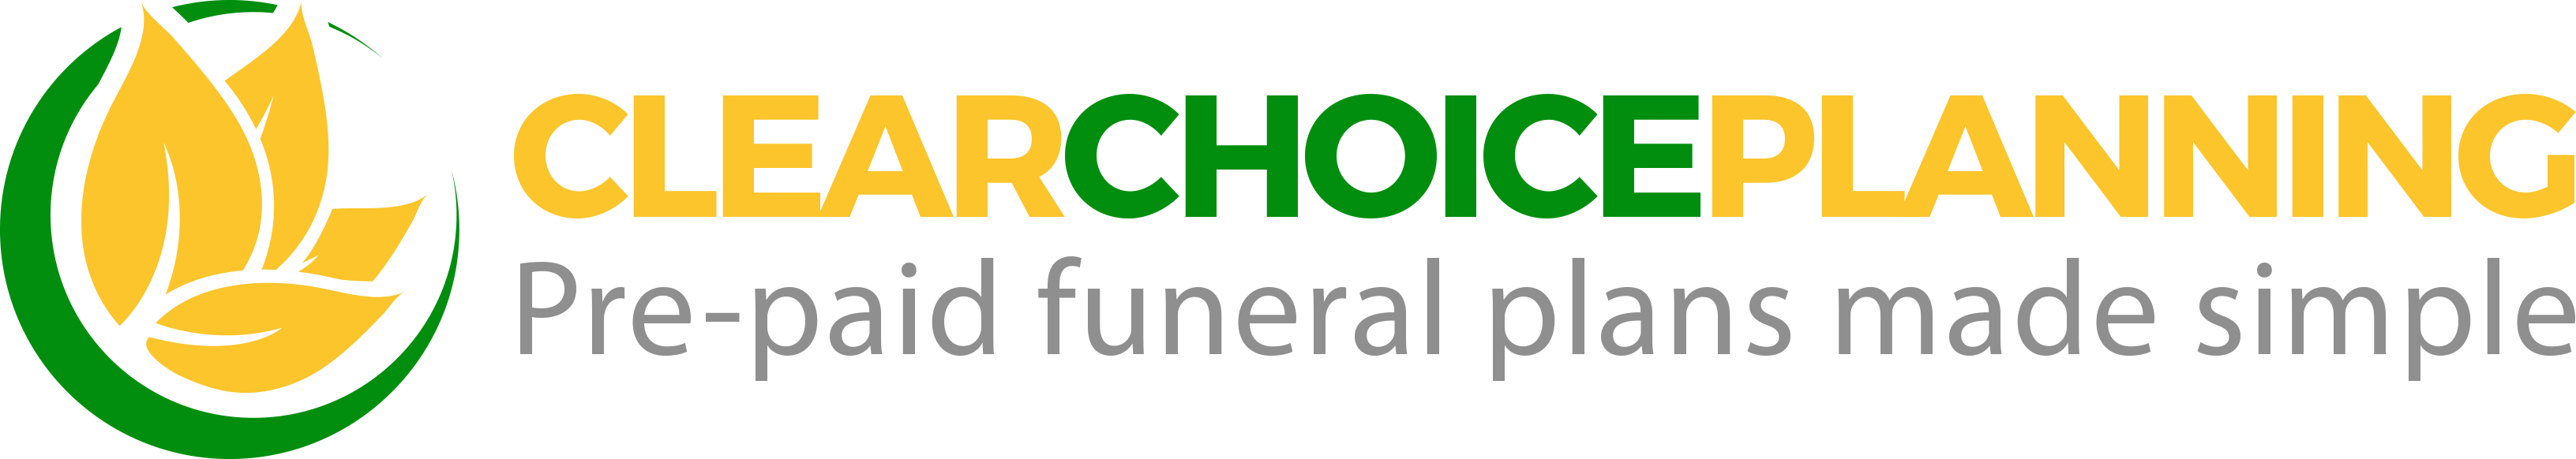 Funeral clipart straight line. Home clear choice planning